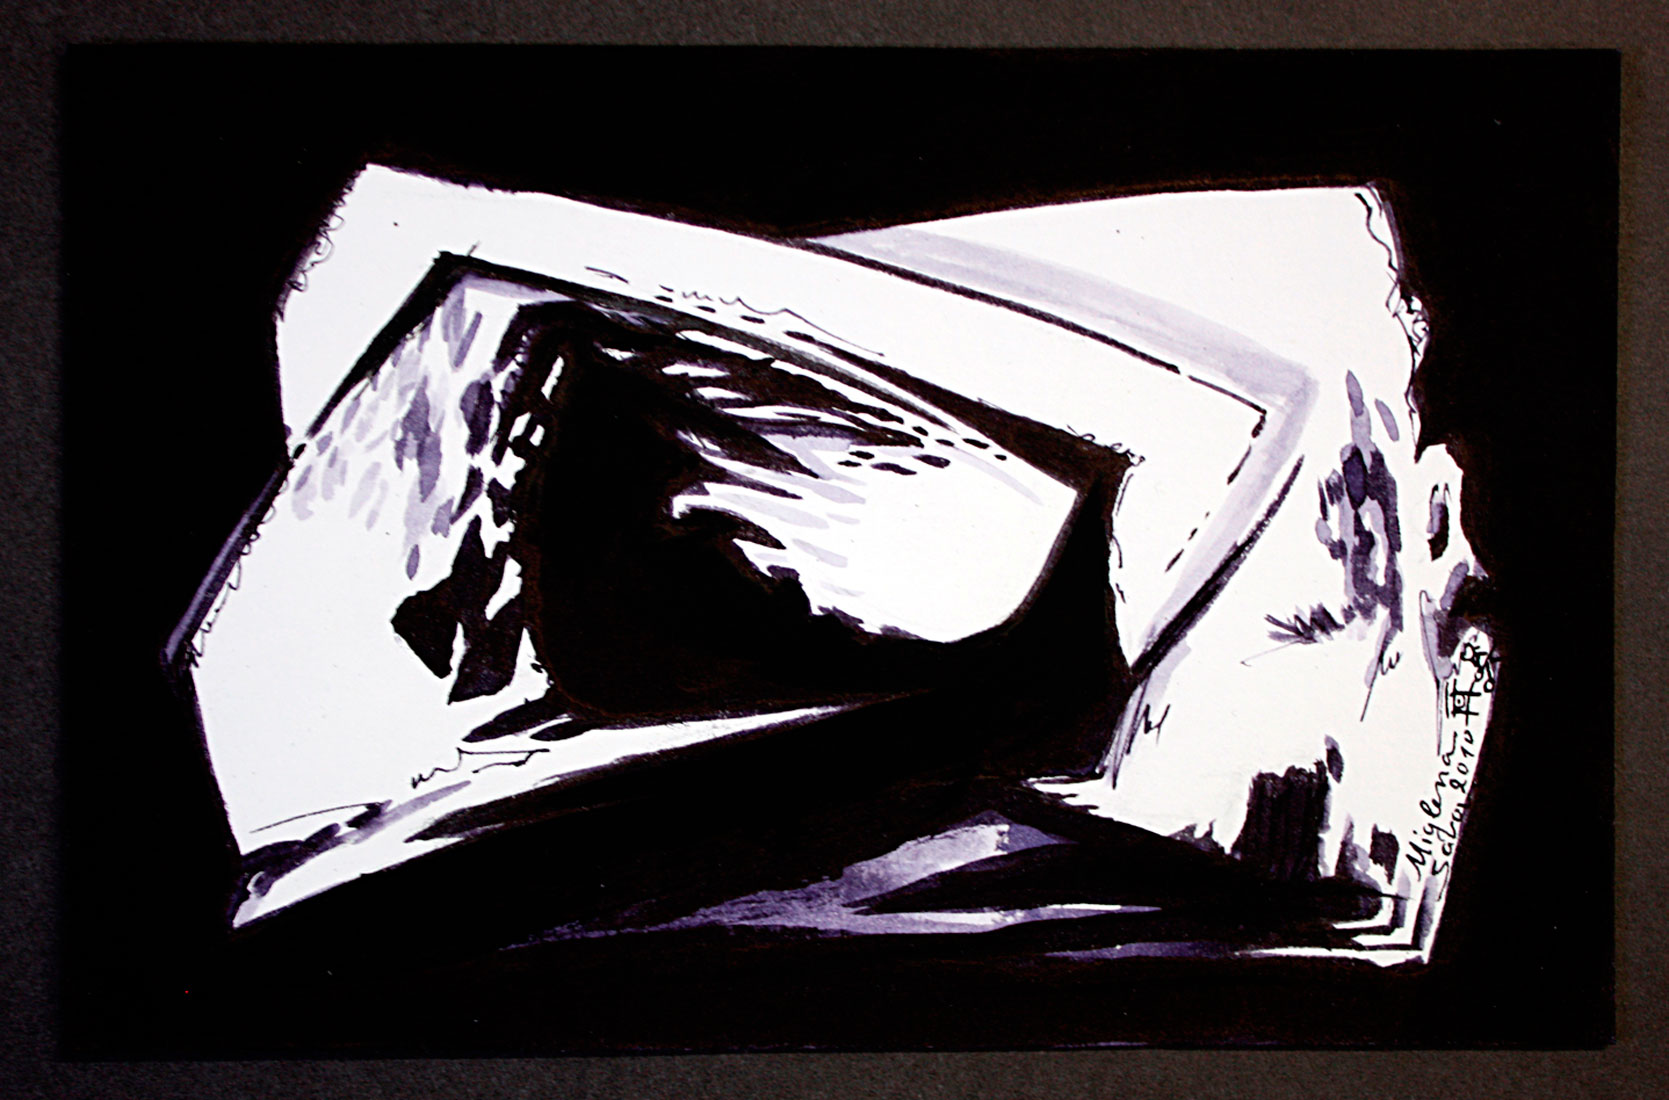 6 x 14 cm drawing ink on paper abstract art